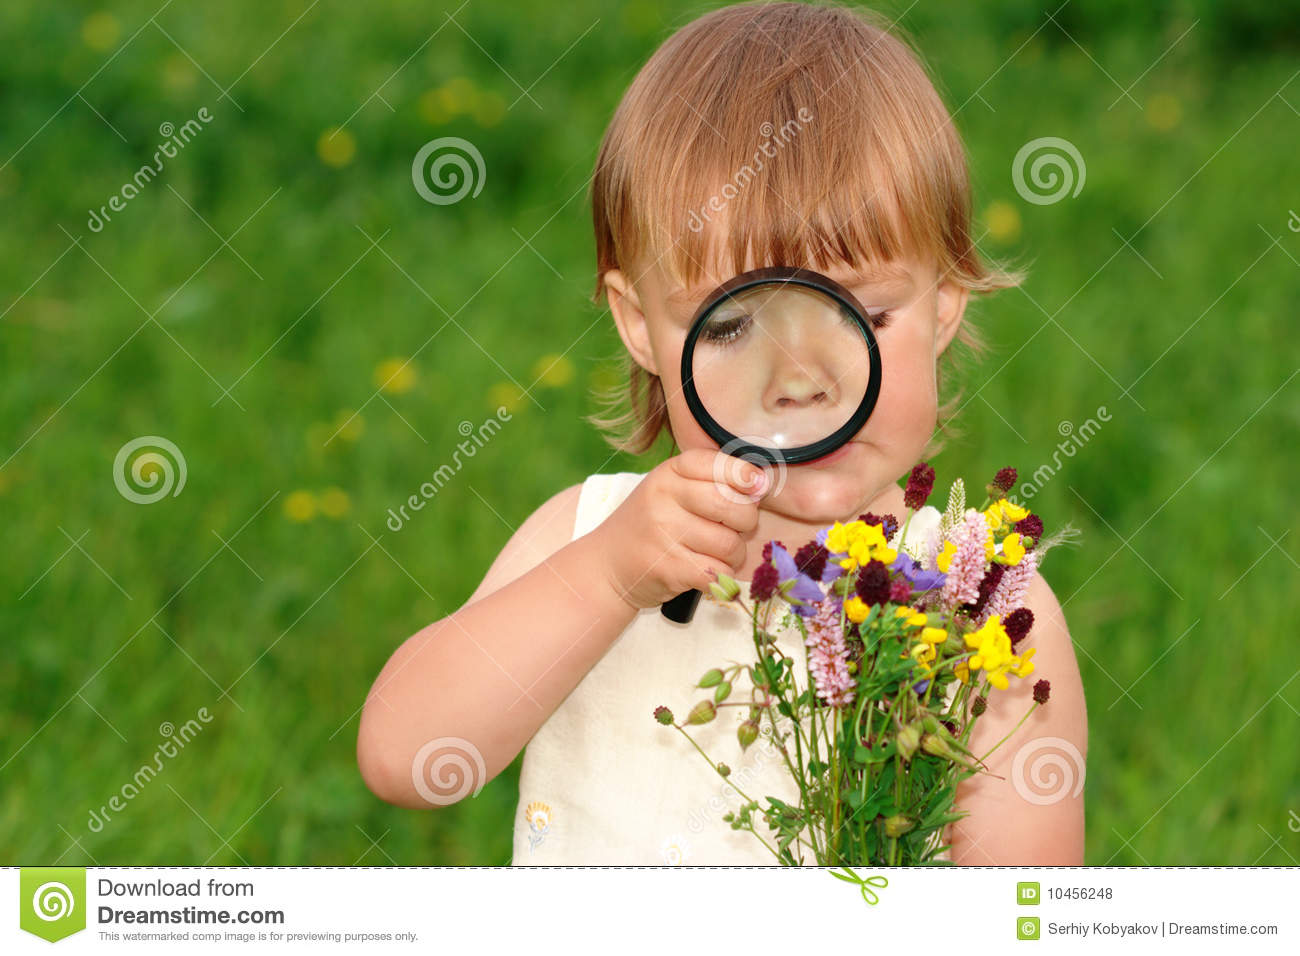 Child Looking At Flowers Through Magnifying Glass Royalty Free Stock s